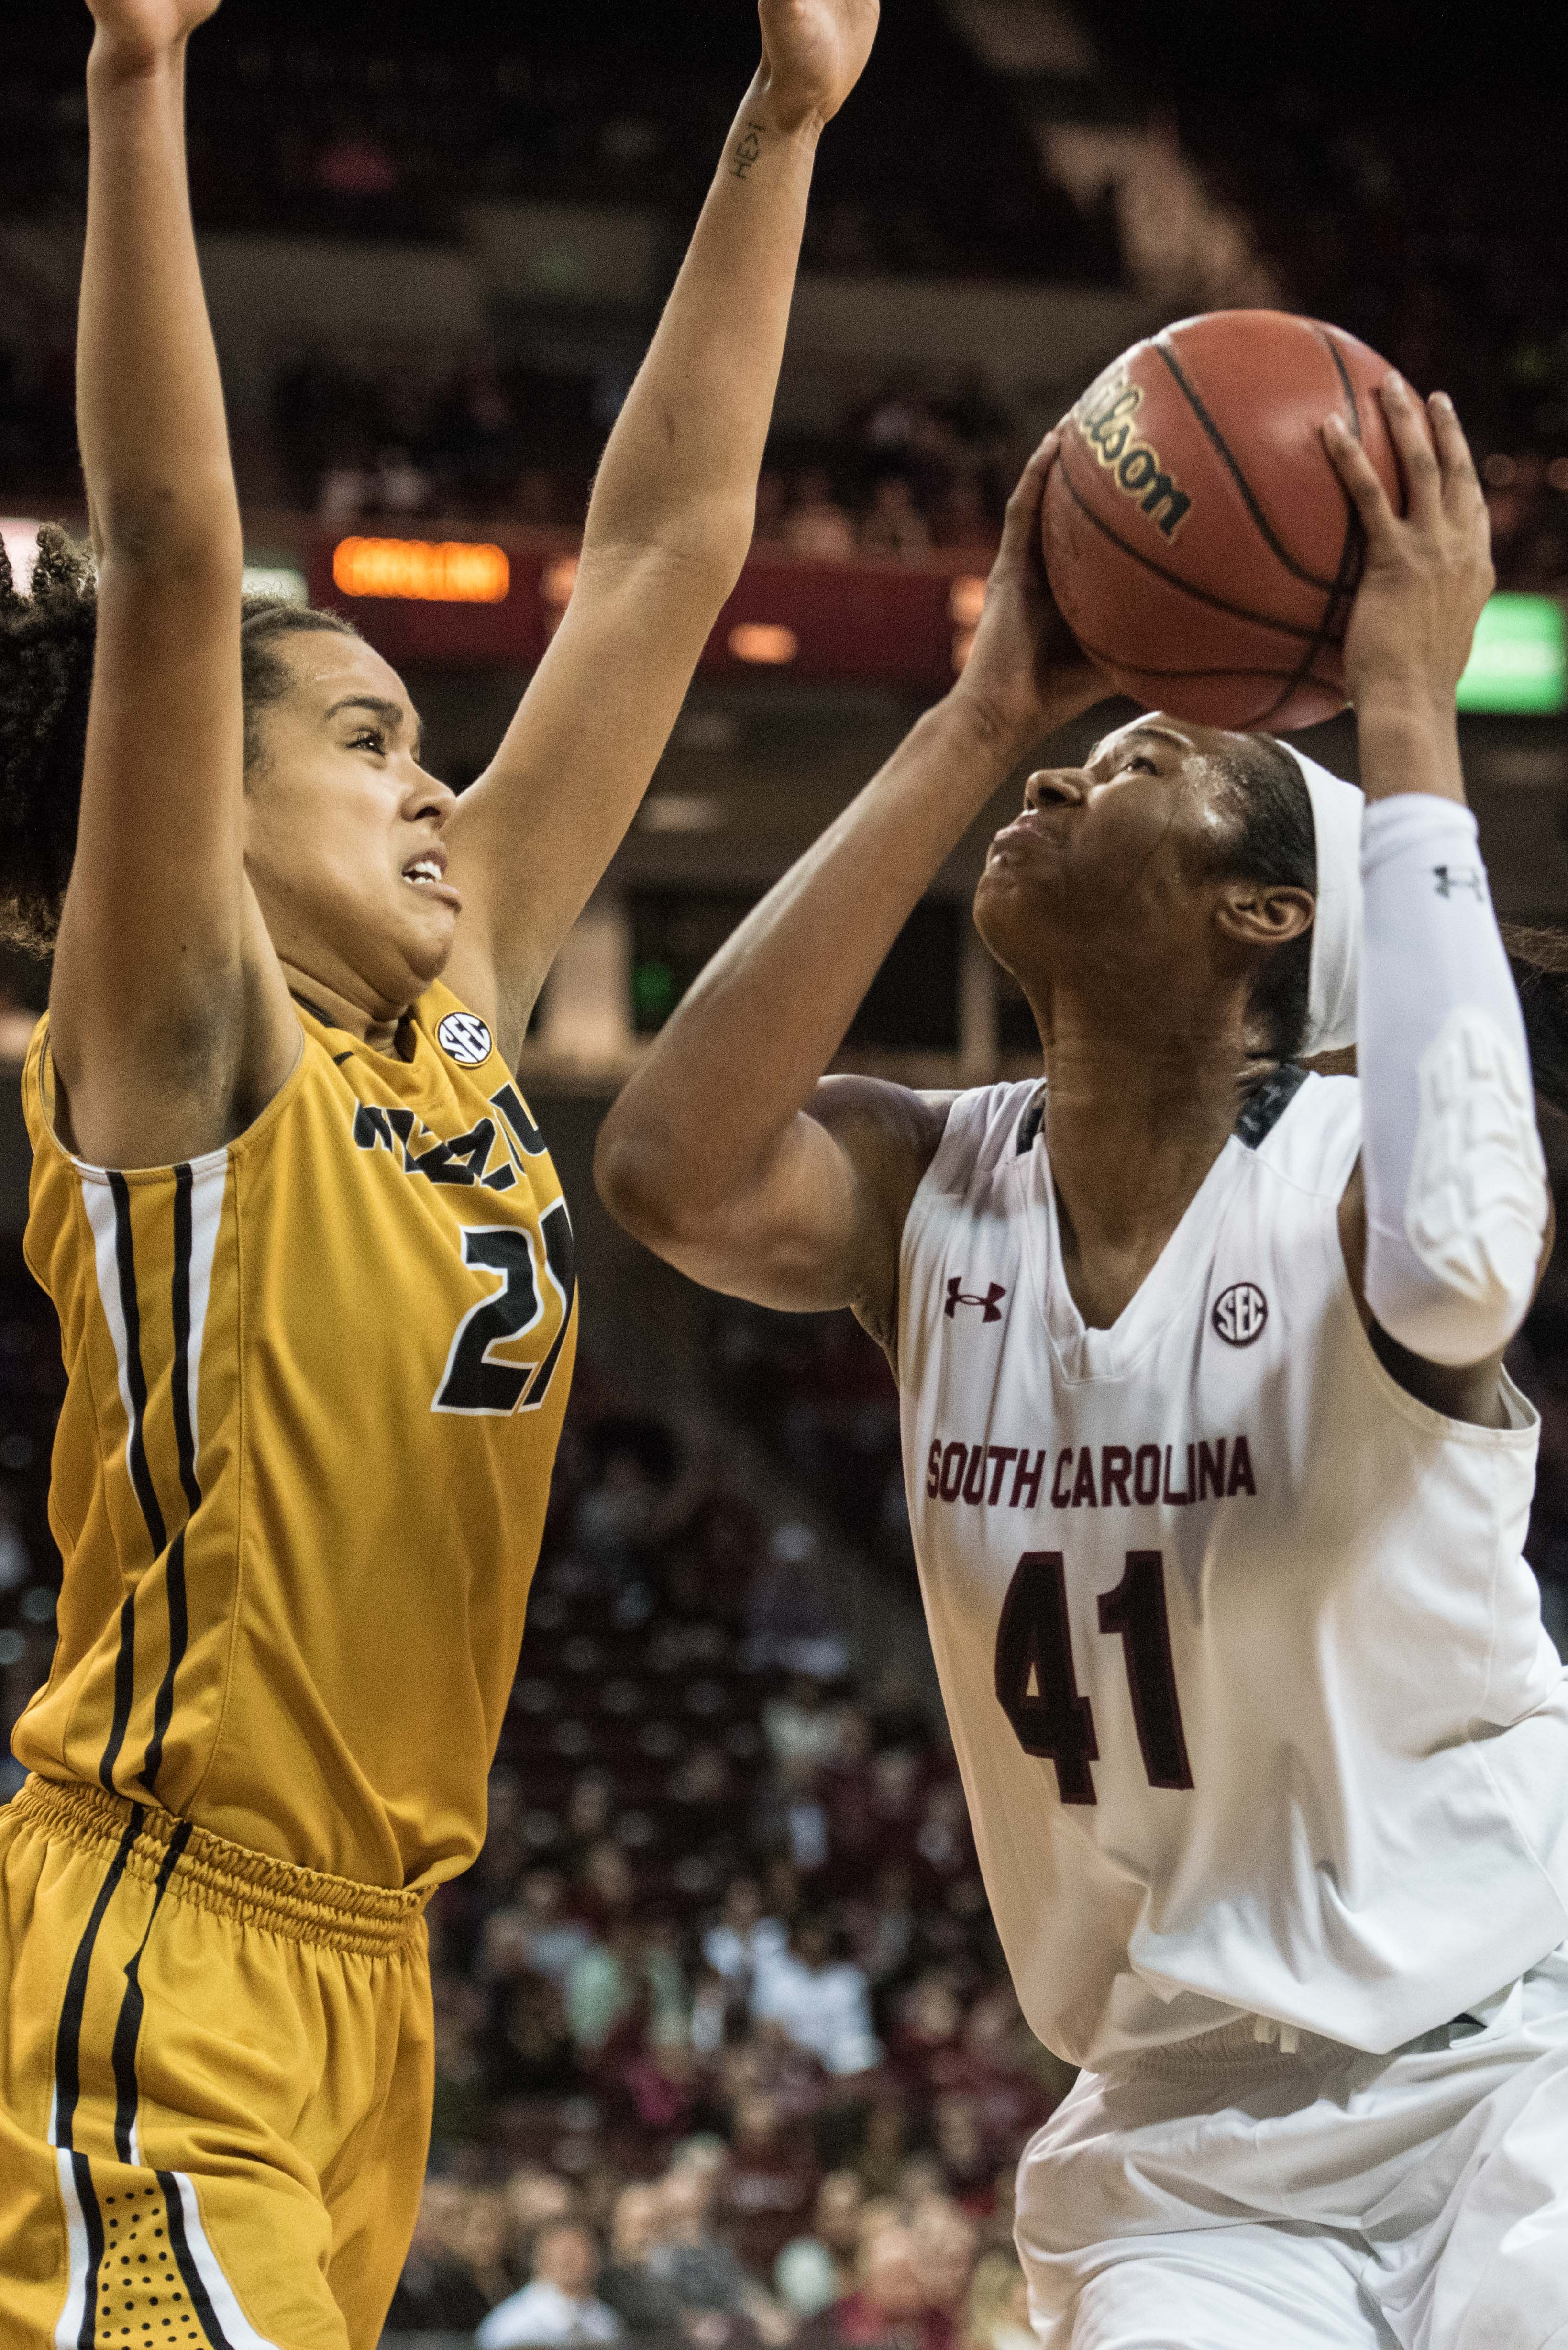 South Carolina center Alaina Coates (41) attempts to shoot against Missouri forward Cierra Porter, left, during the first half of an NCAA college basketball game Sunday, Jan. 10, 2016, in Columbia, S.C. South Carolina defeated Missouri 83-58. (AP Photo/Se